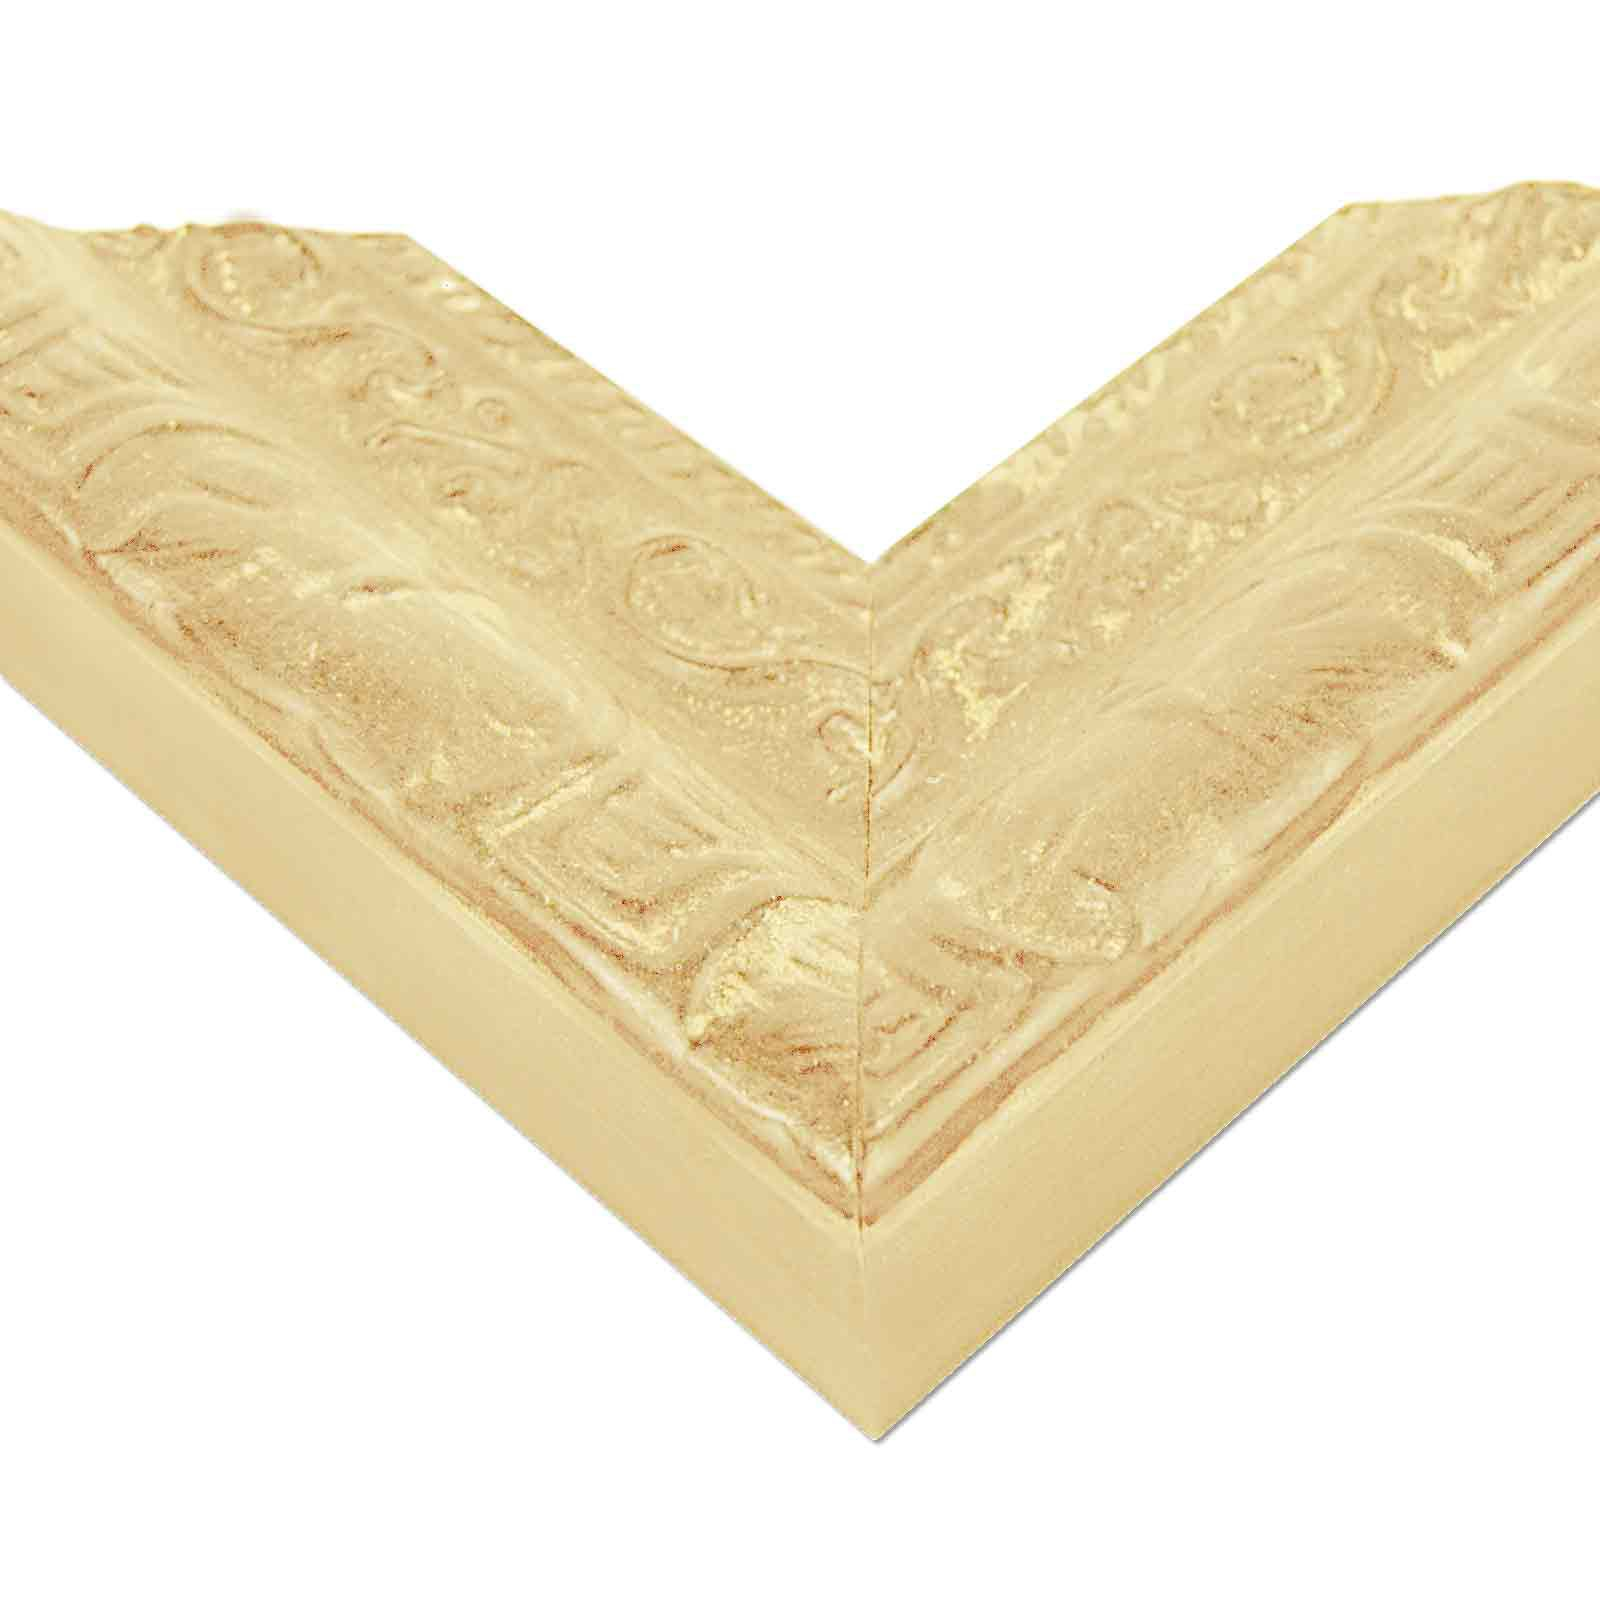 Baroque Frame BA1086 Cream Decorated, Series 261 Profile H x B 1 11 ...